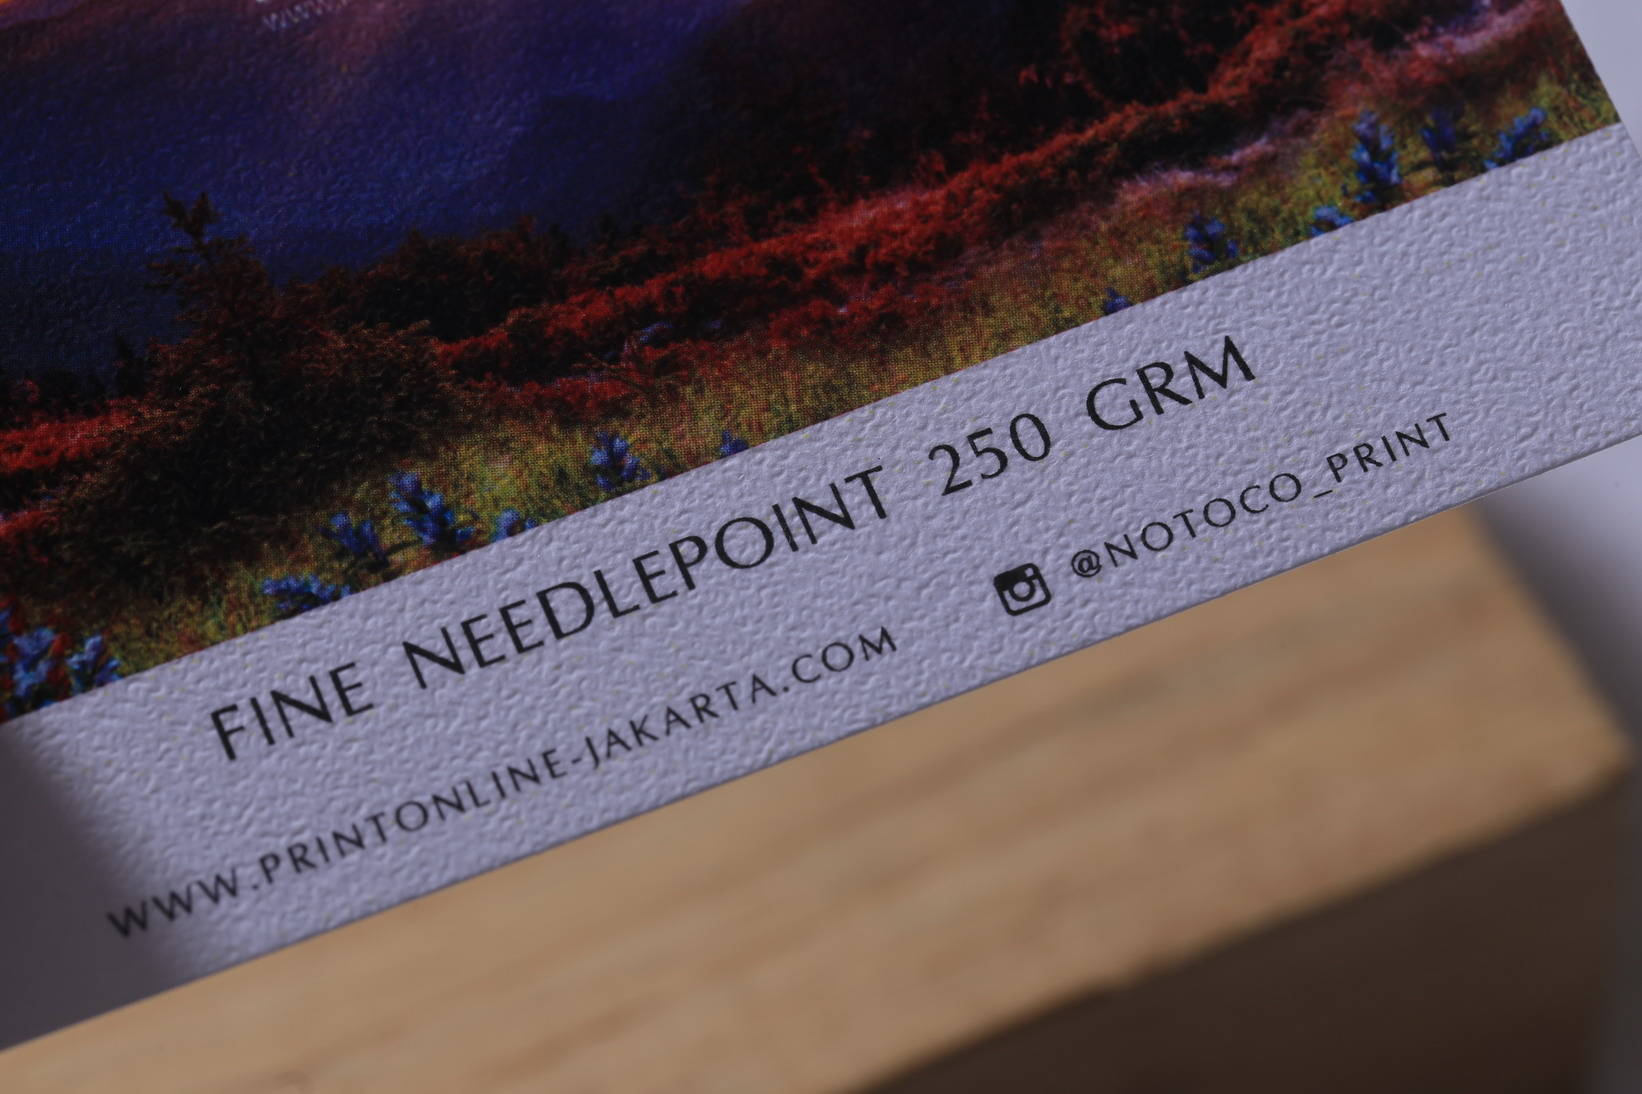 Fine Neddle Point 250 grm